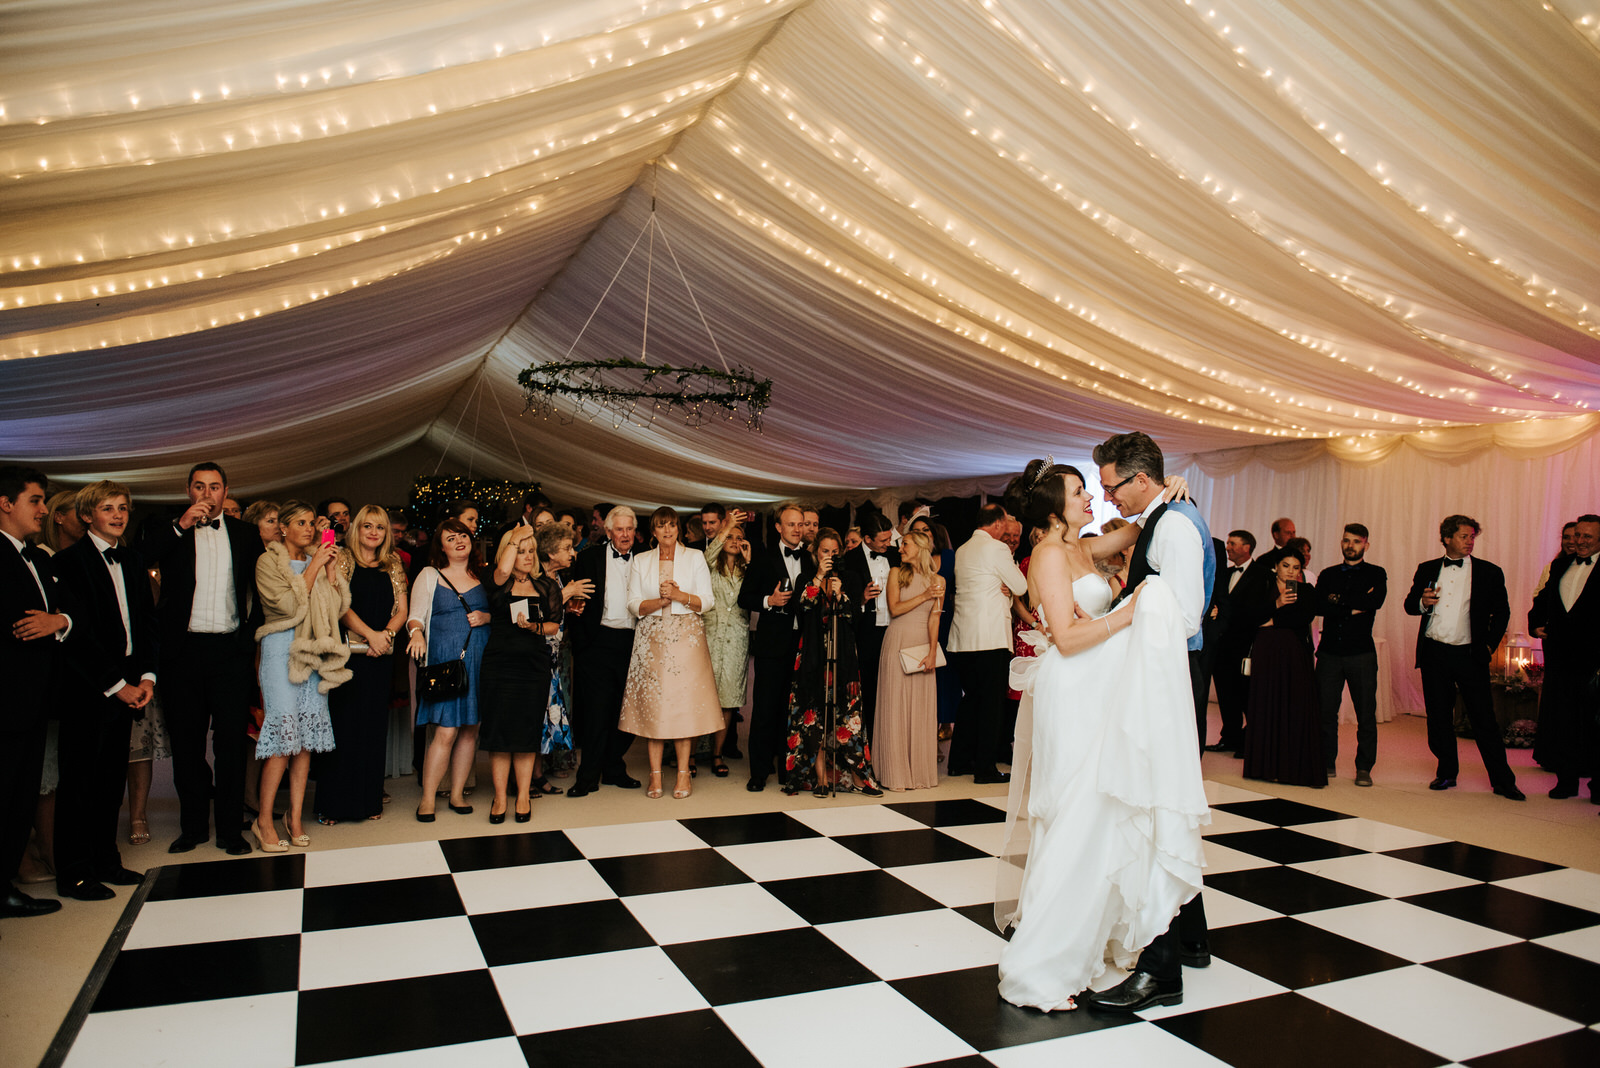 Wide shot of bride and groom embracing each other during their f